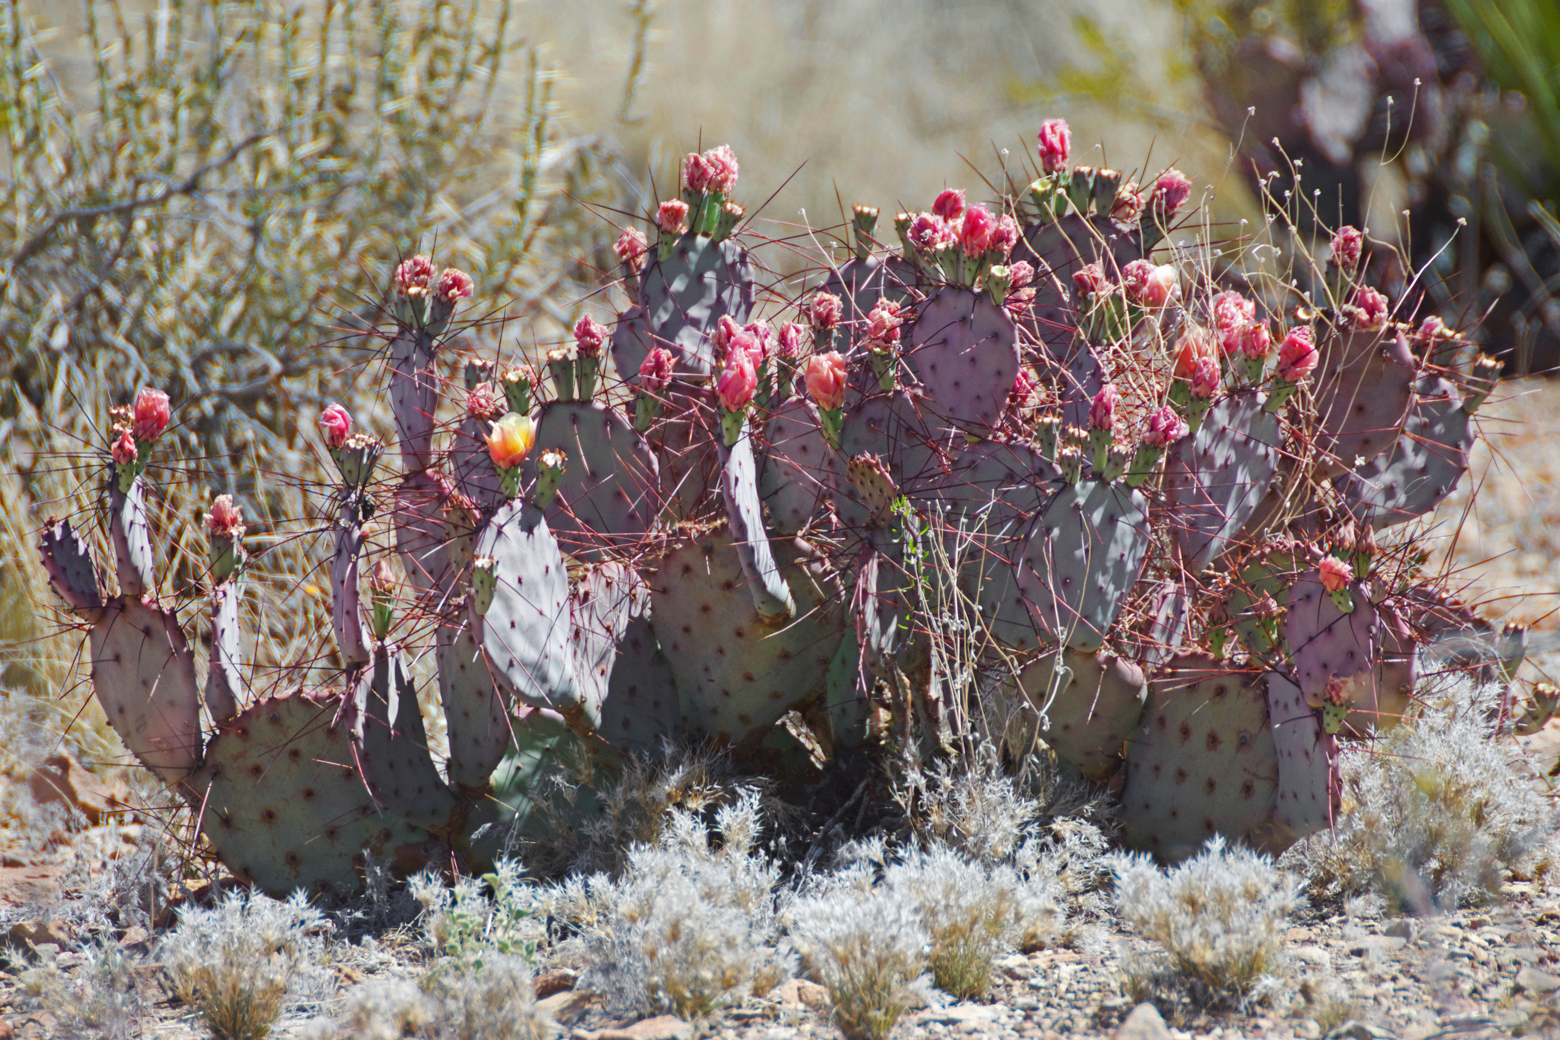 A species of prickly pear cactus in bloom on the trail to Mule Ears Spring in Big Bend National Park